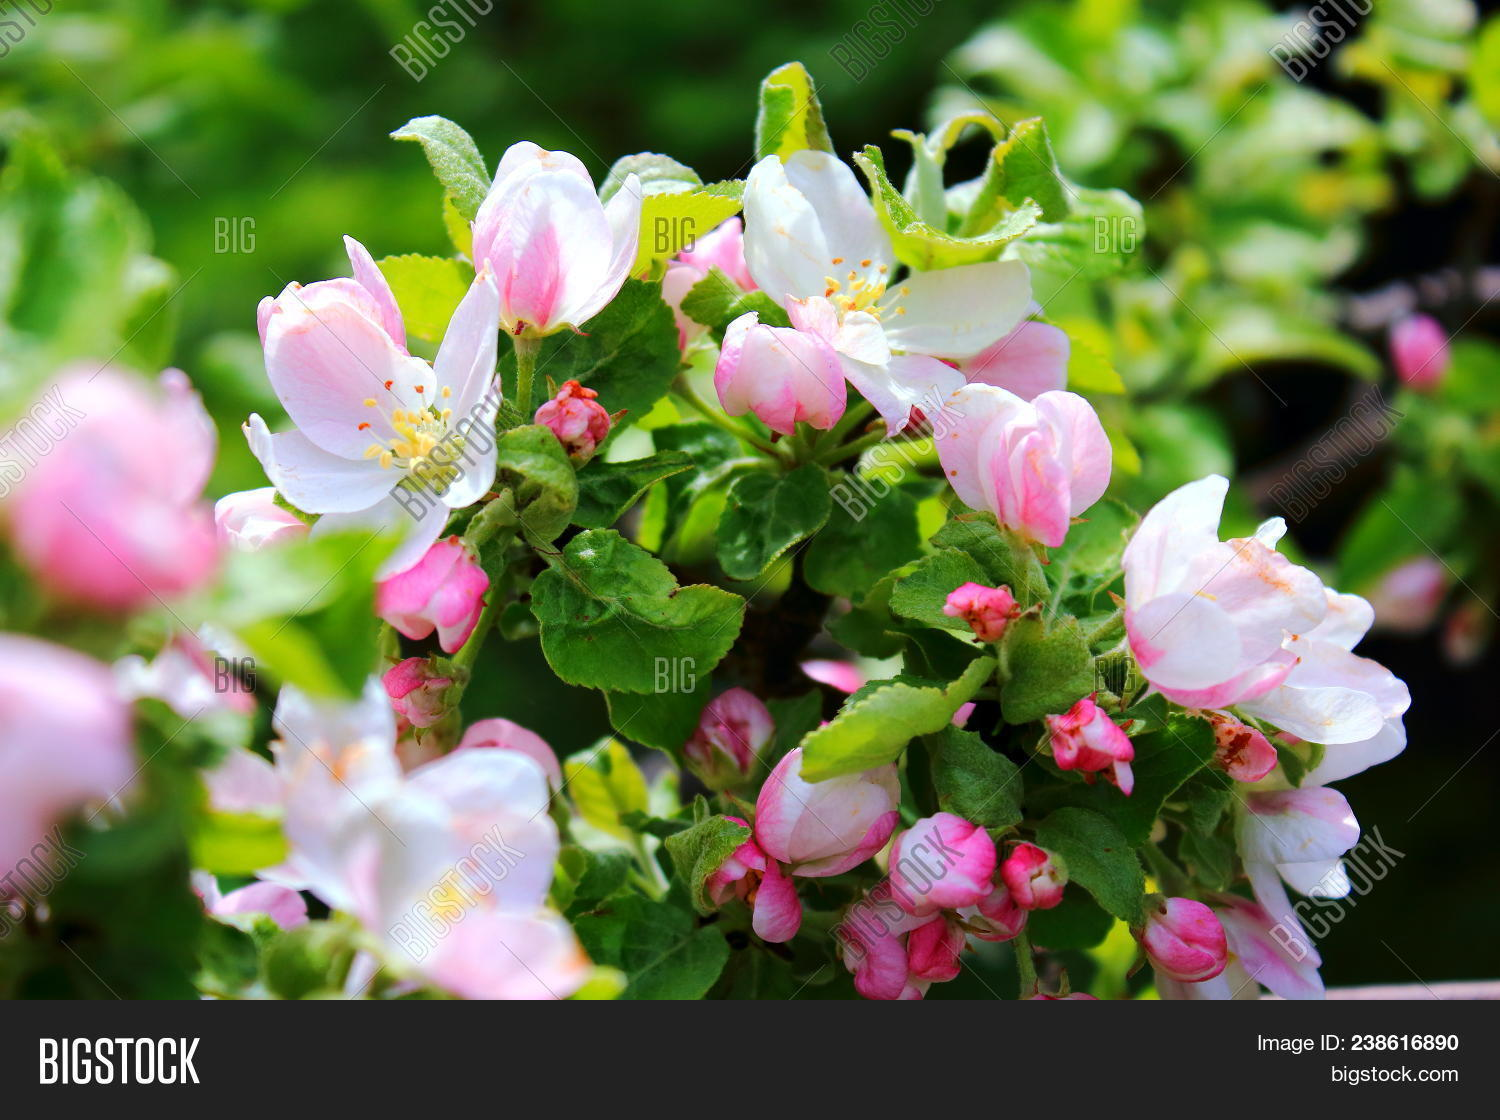 Apple Trees Blooming Image Photo Free Trial Bigstock